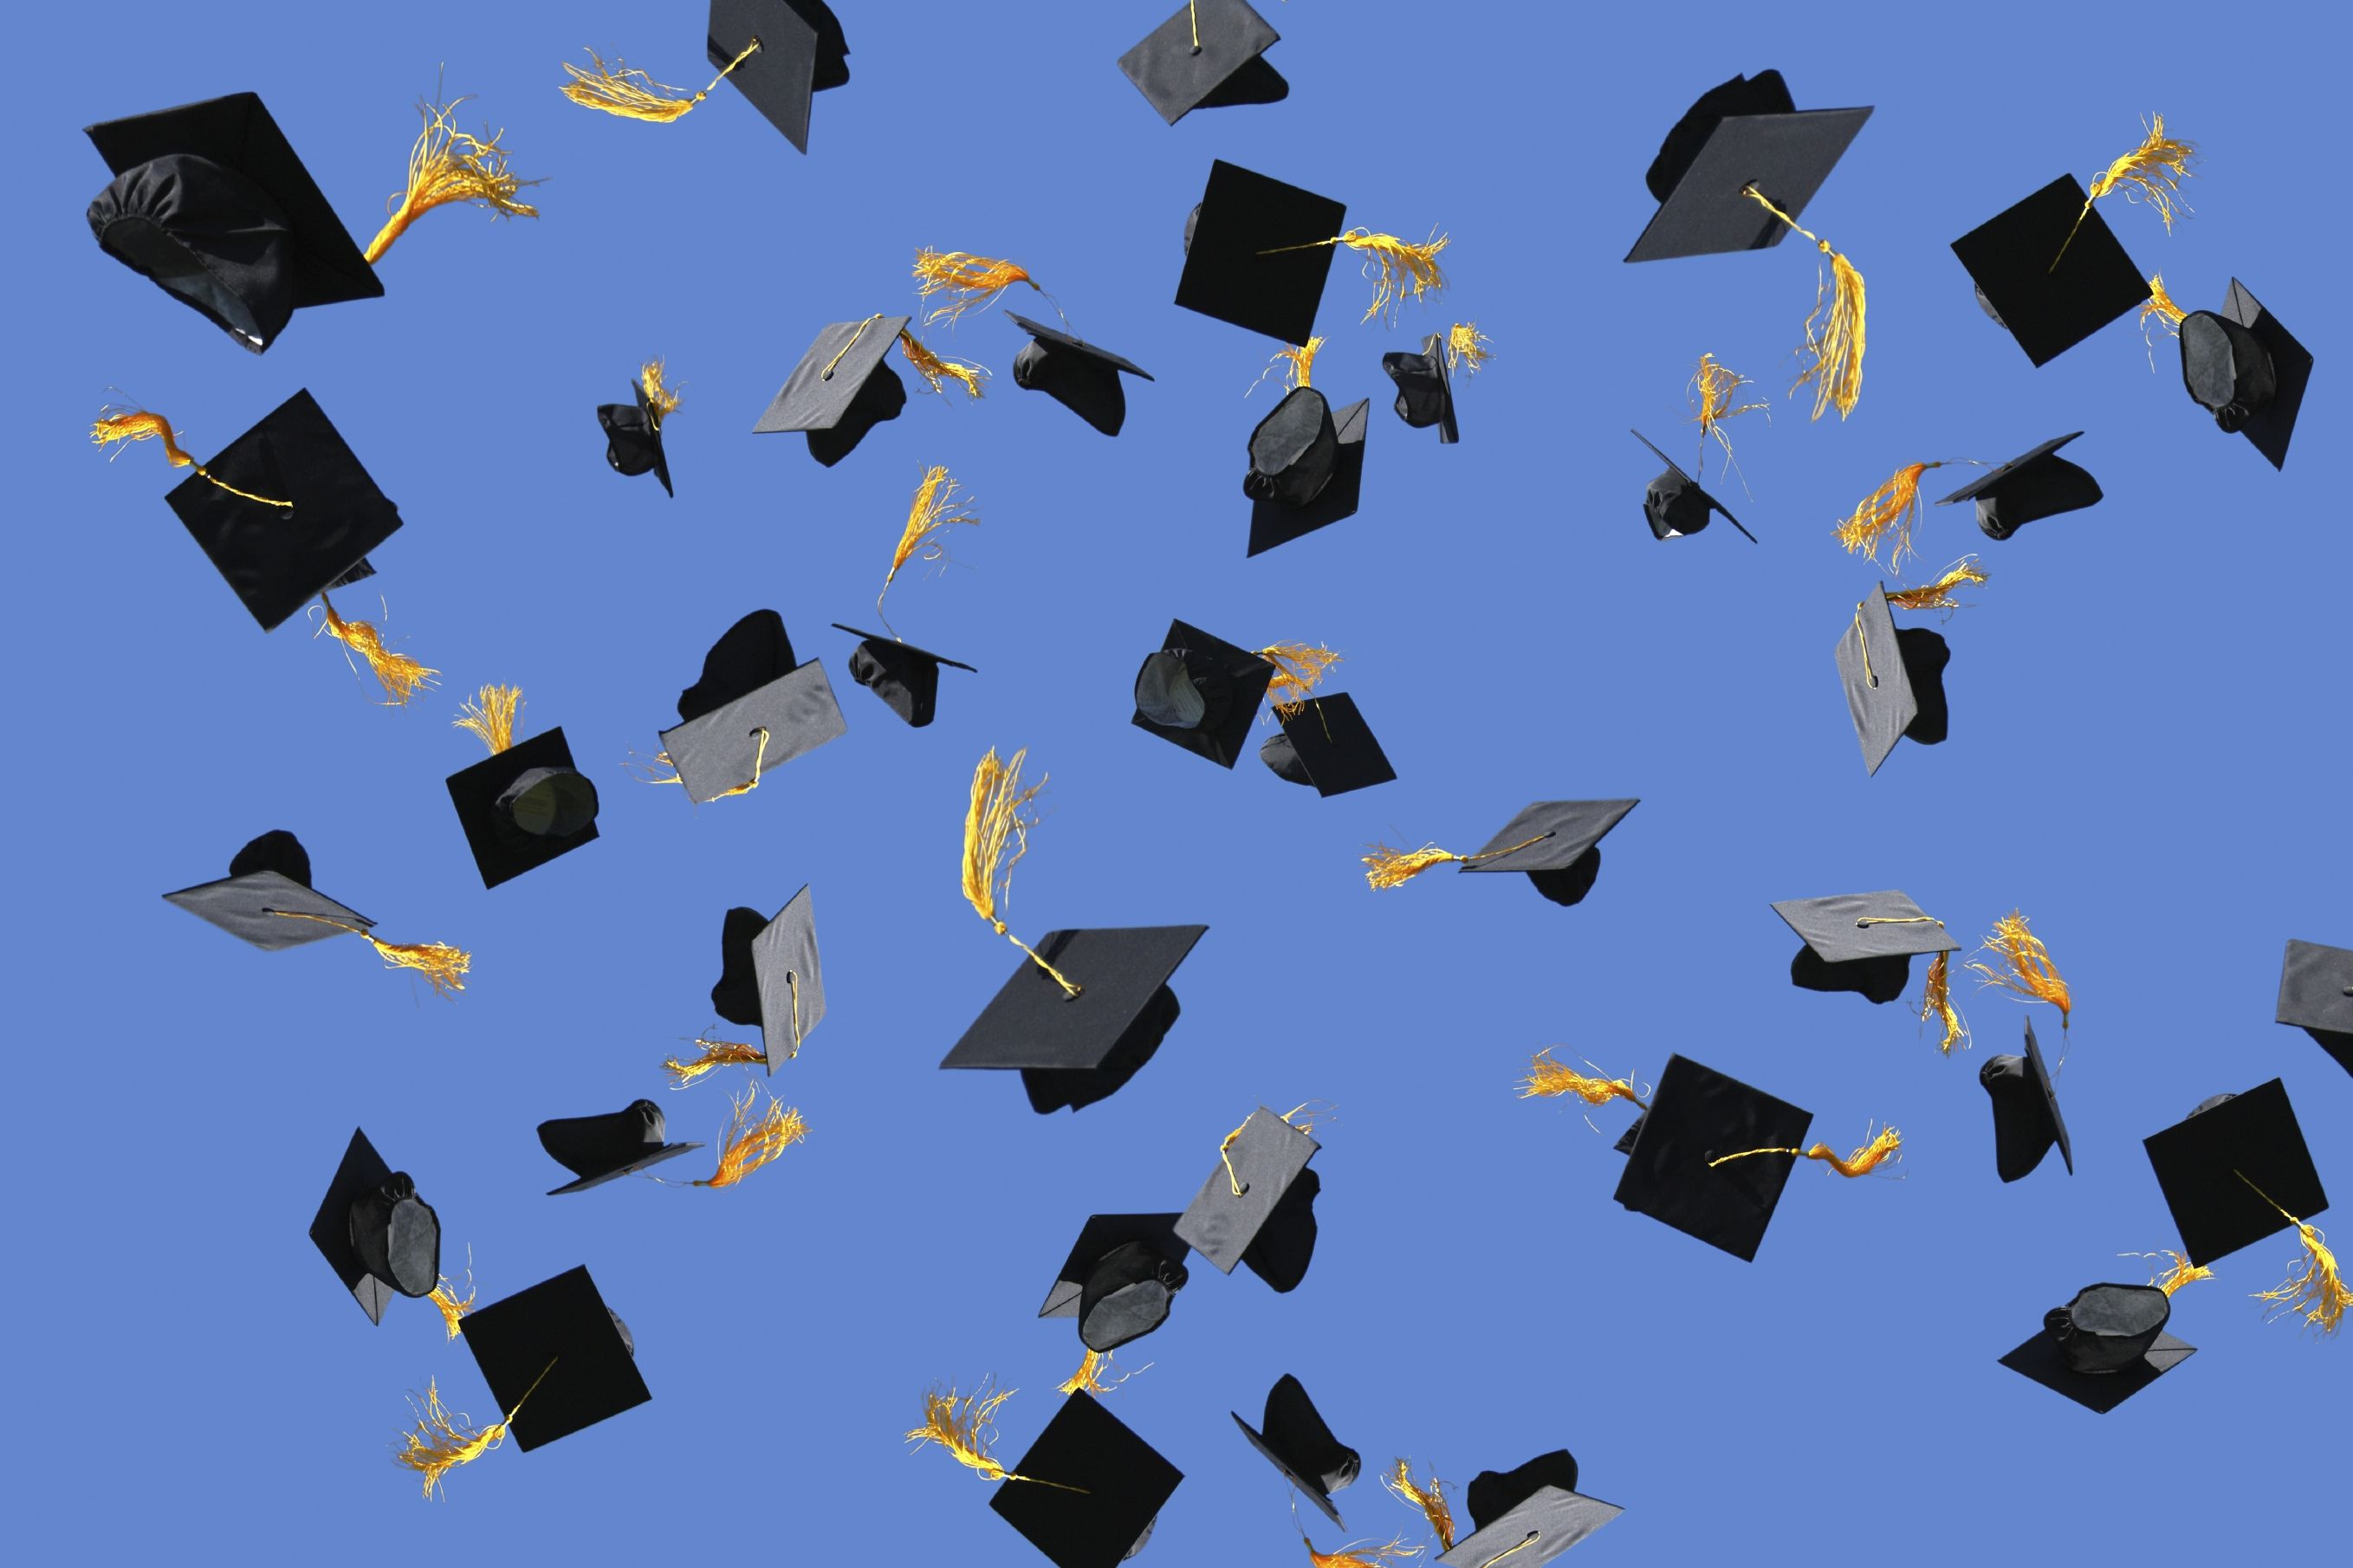 2716x1810 Good LSM: Graduation Catering | Local Store Marketing Guide